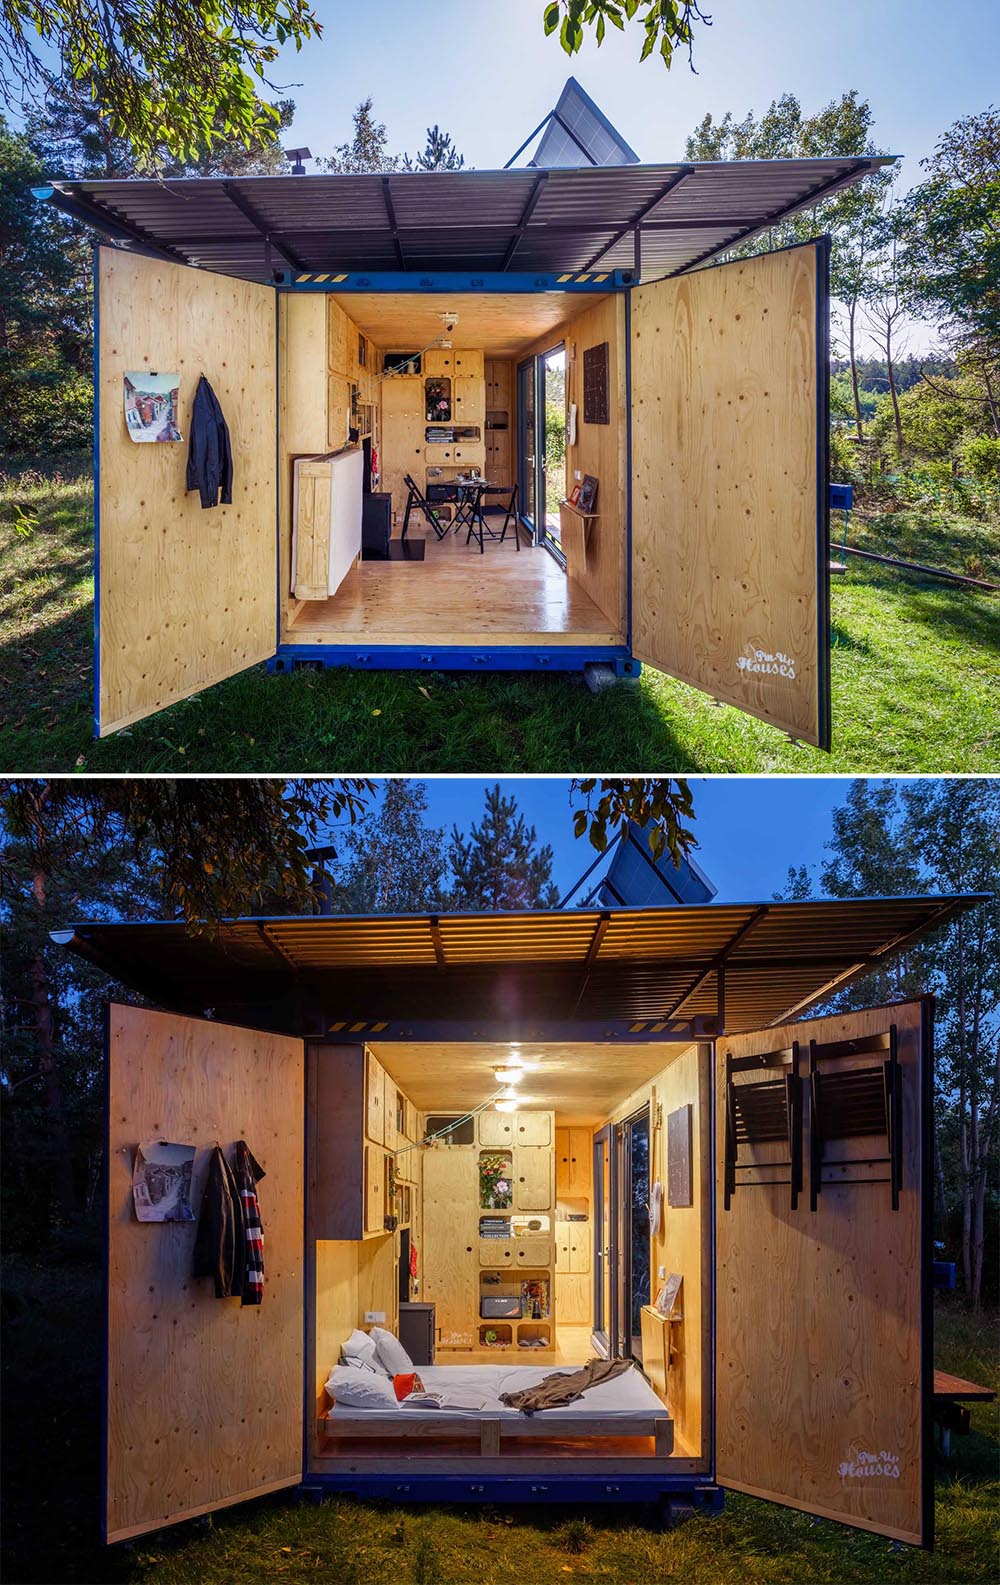 A tiny house made from a small shipping container, that's also completely off-grid and has a plywood interior.